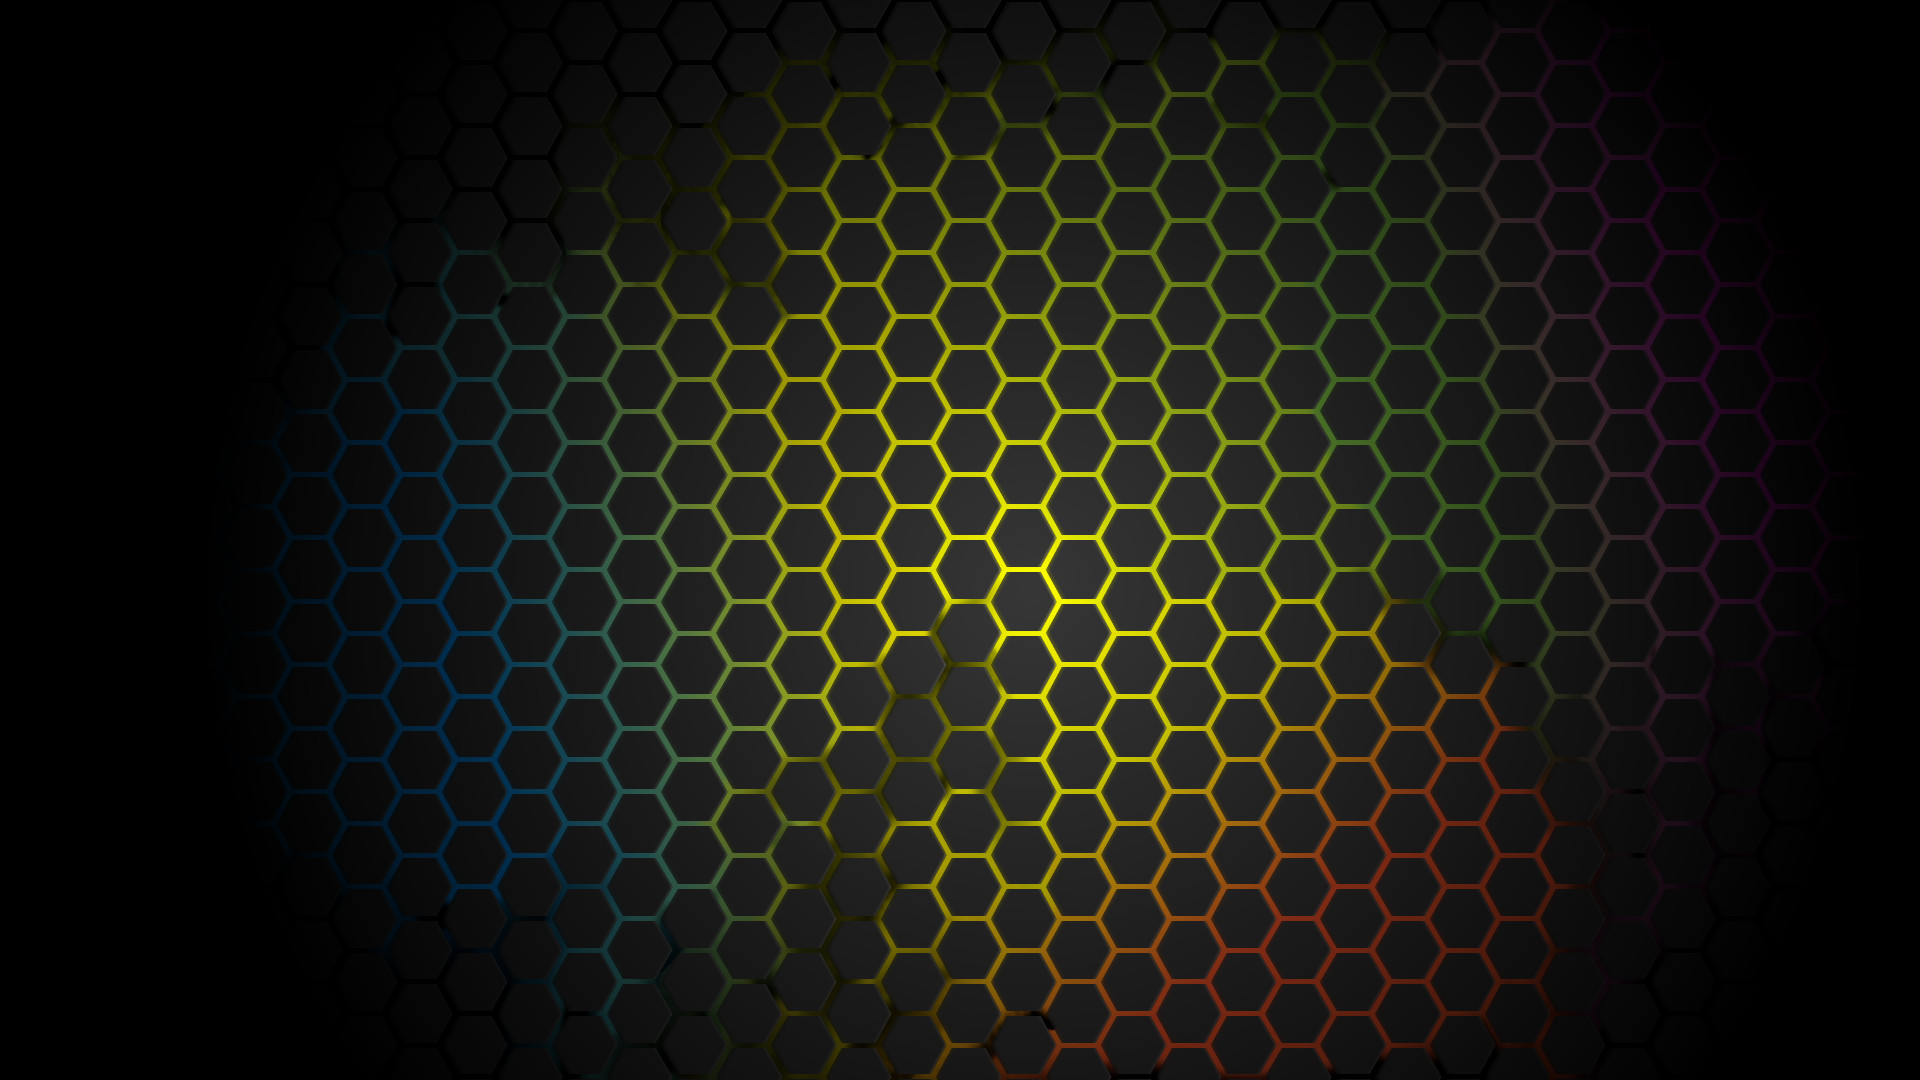 Res: 1920x1080, neon honeycomb wallpaper by k3nny94 customization wallpaper abstract